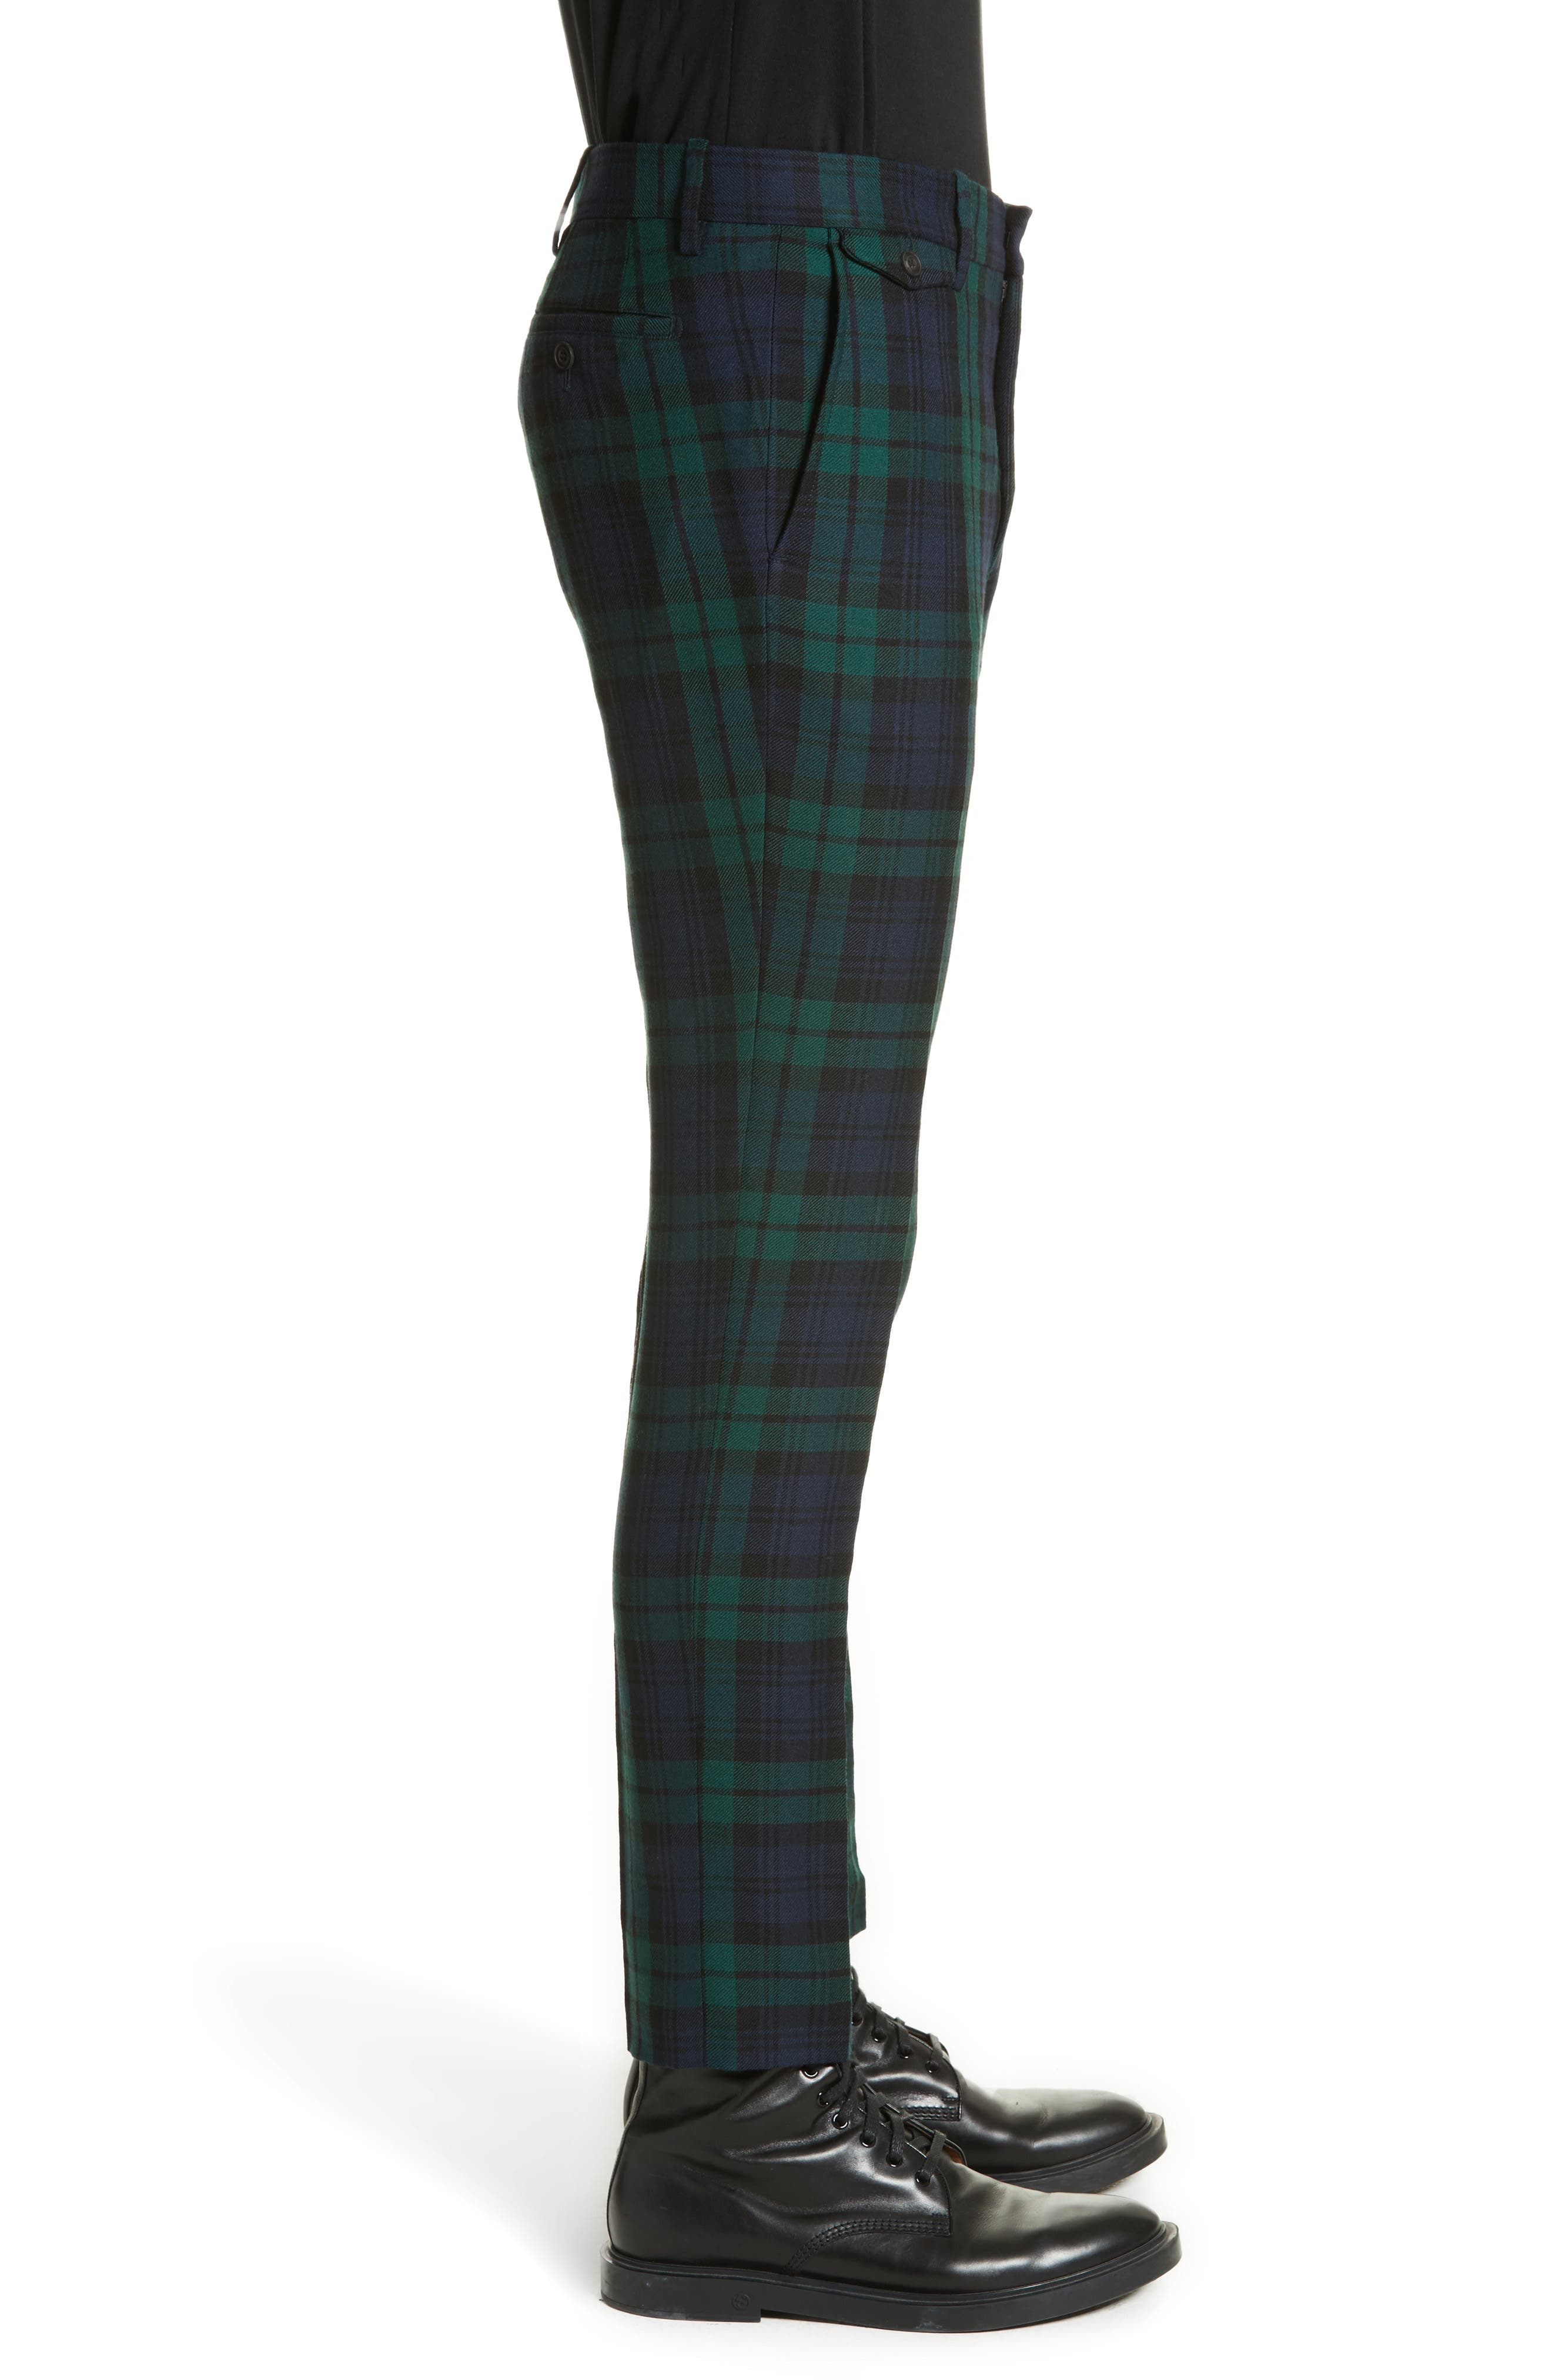 BURBERRY,                             Serpentine Check Wool Pants,                             Alternate thumbnail 3, color,                             410